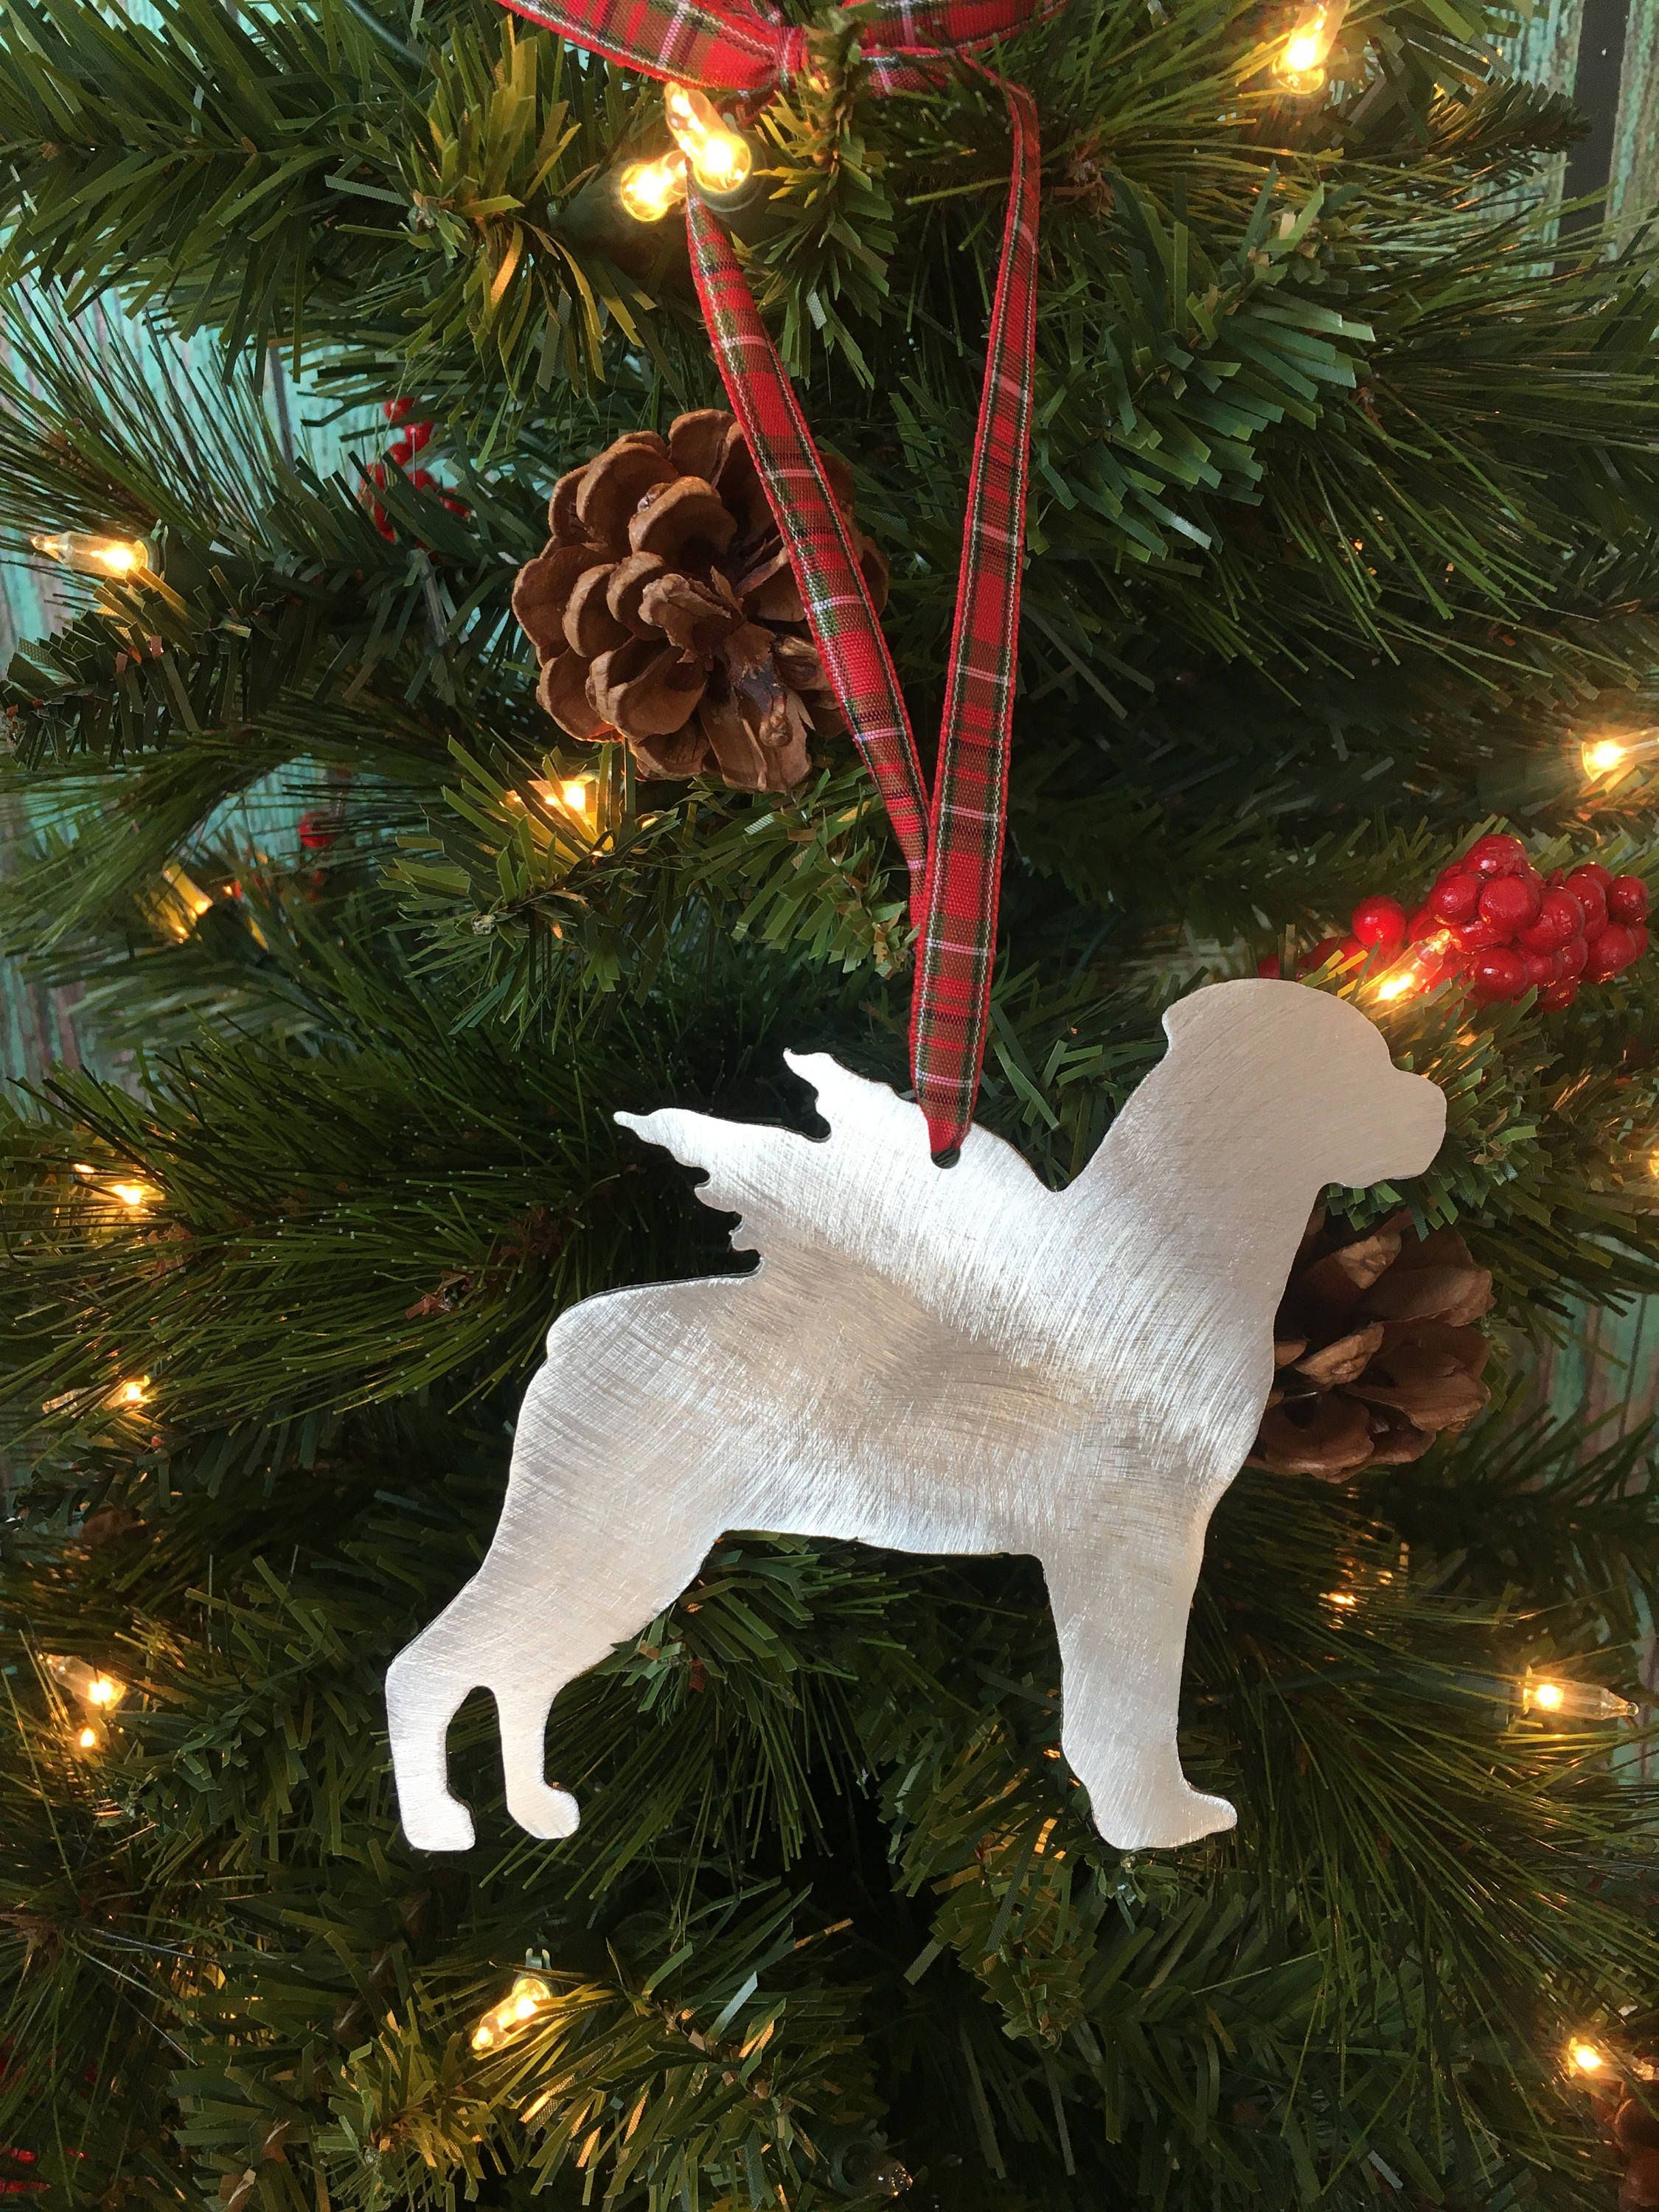 Dog Christmas Tree DecorationWESTIE BaubleGreat Xmas Gift for Dog Lover